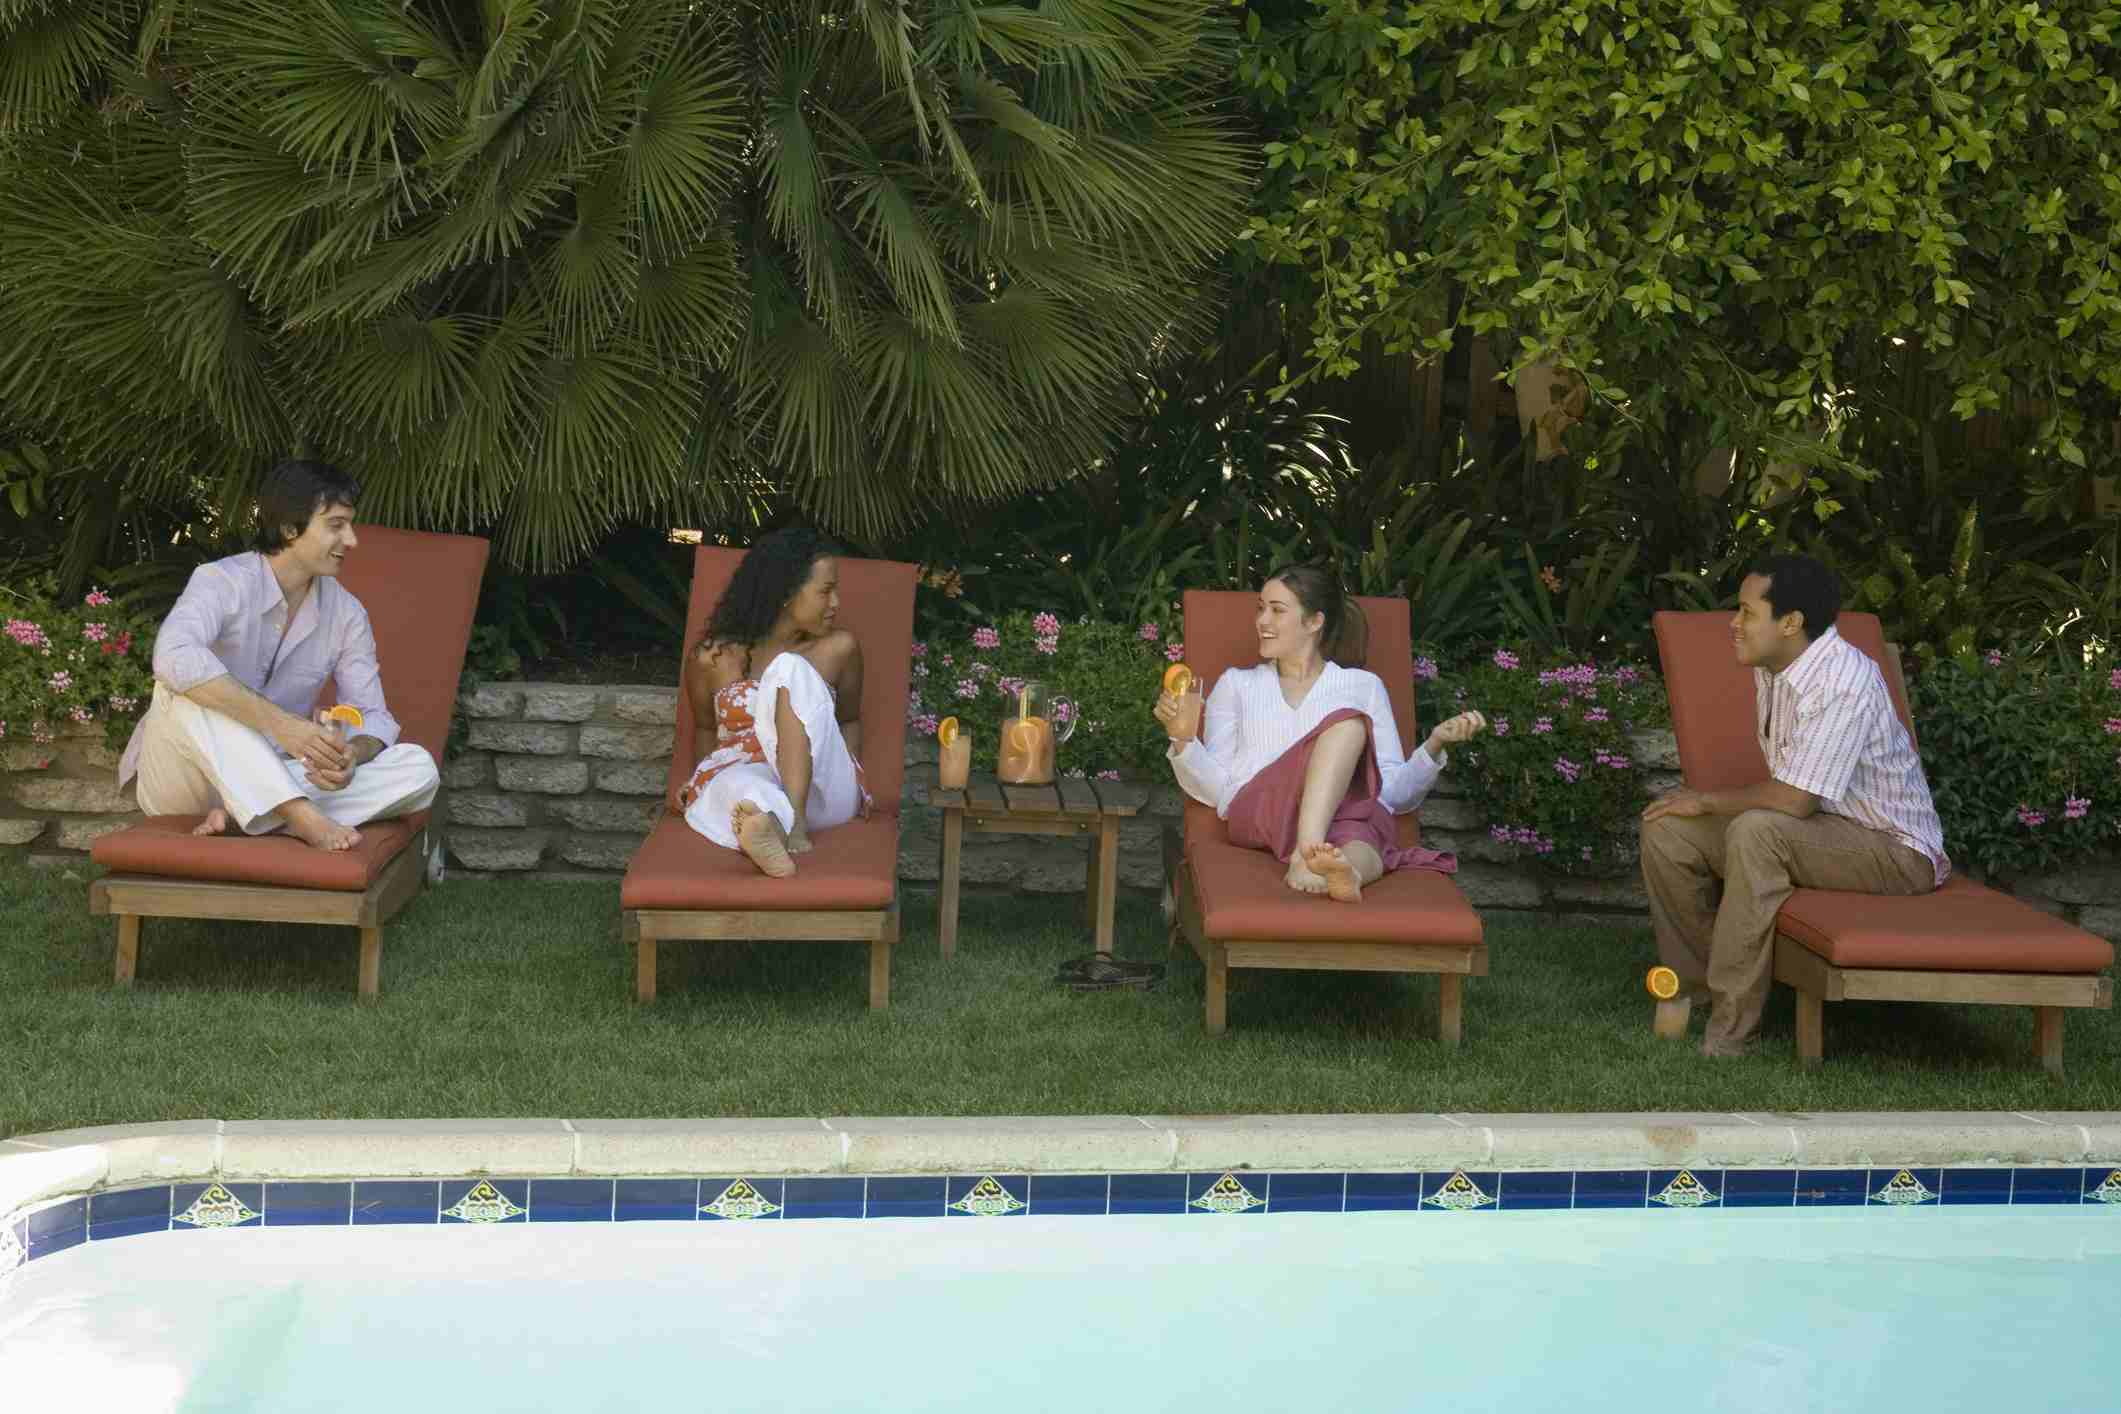 Four people on lounge chairs near swimming pool.